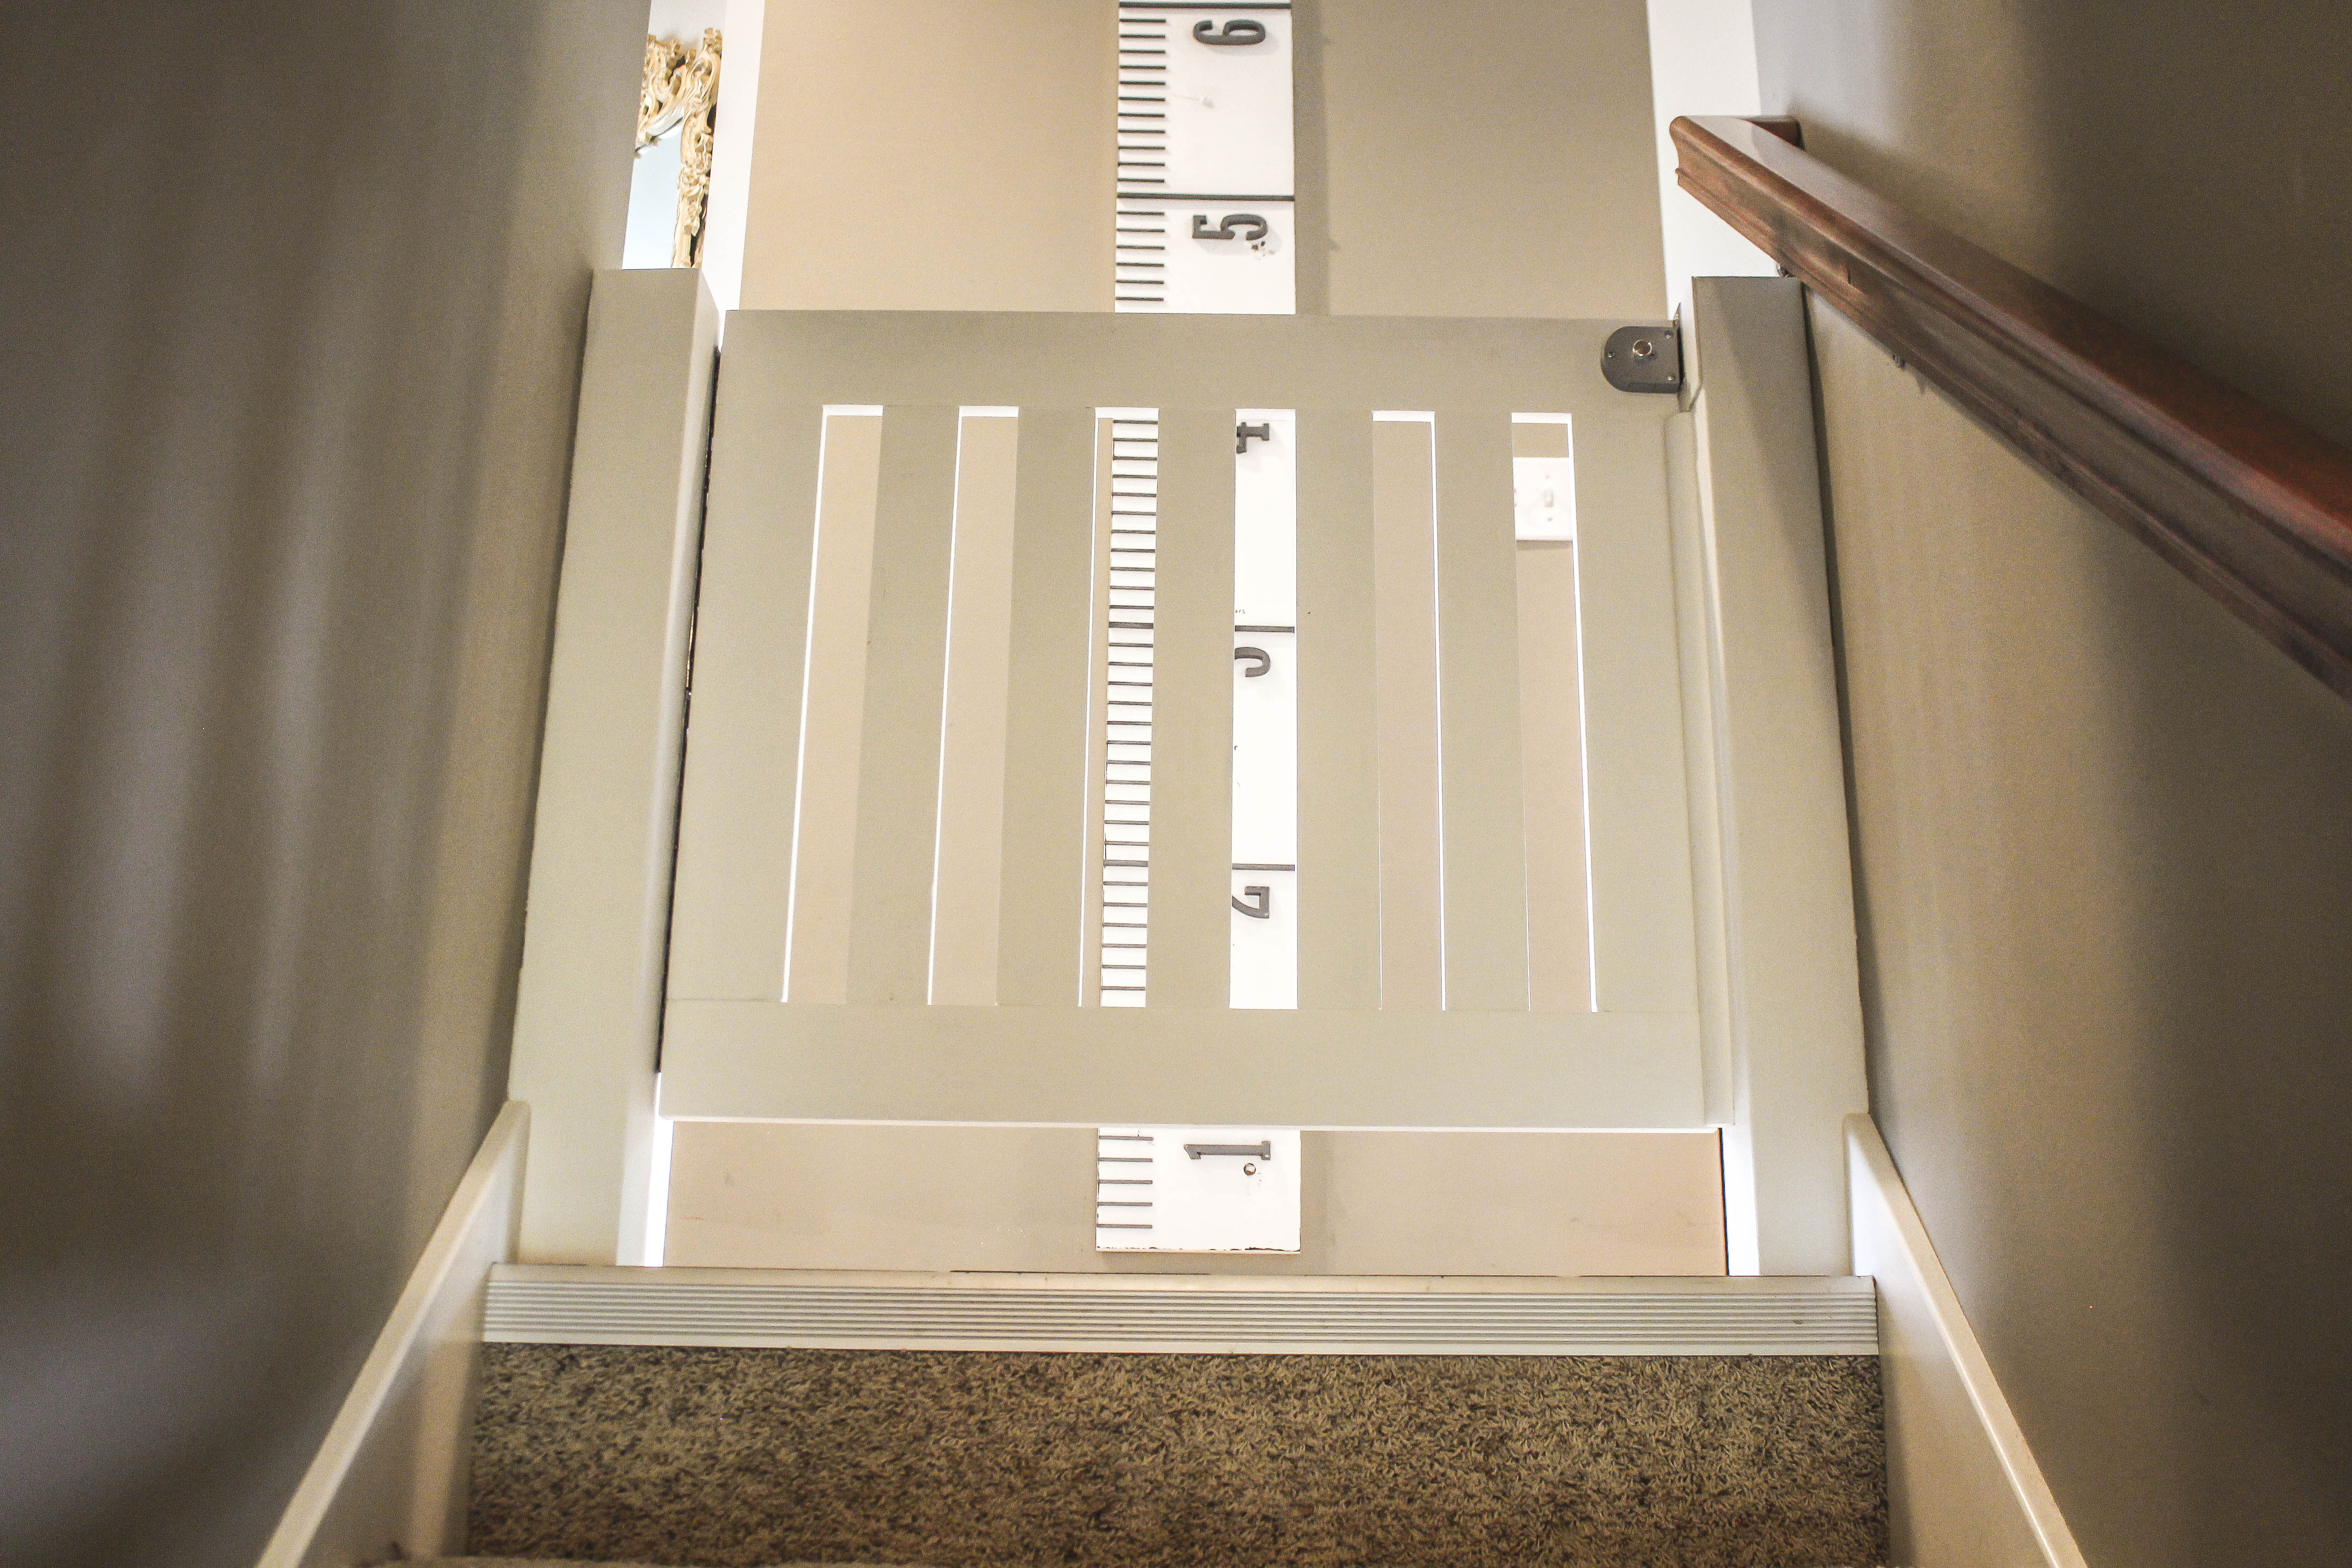 I Used A Piano Hinge For The Durability And It Can Open The Full 180º! When  We Are Carrying Things Up And Down The Stairs It Is Easy To Prop It Open.